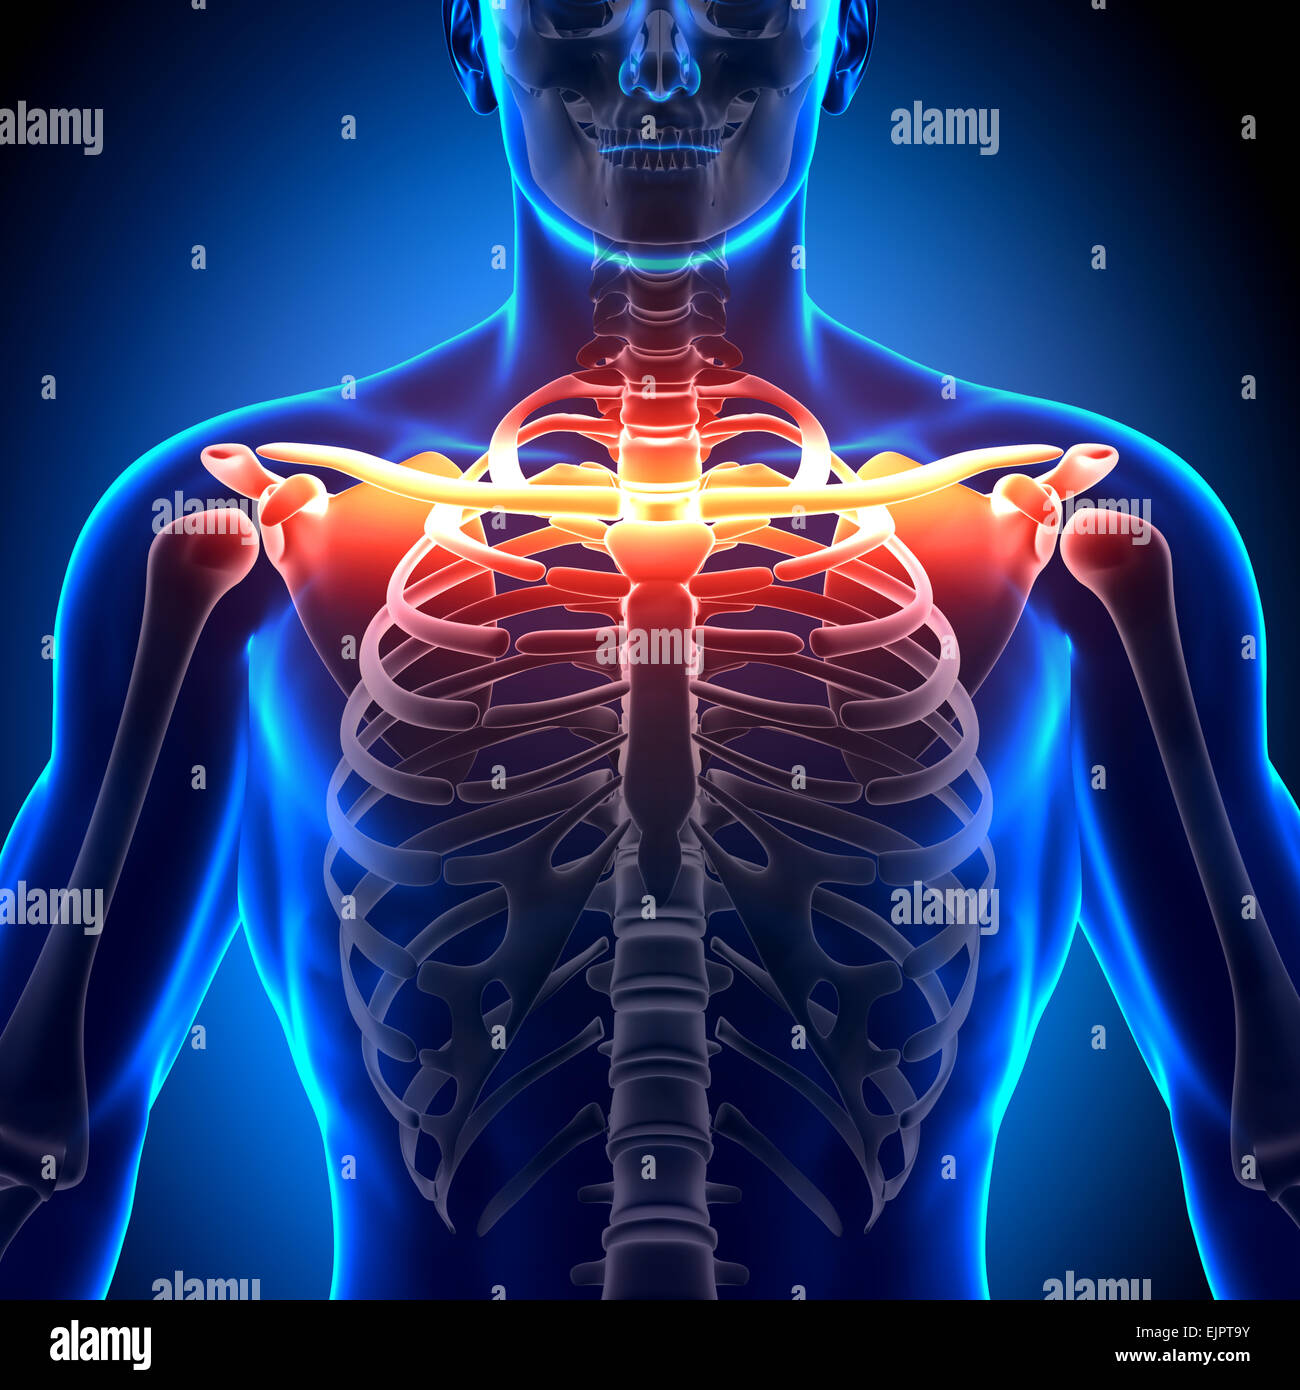 Chest Bones Stockfotos & Chest Bones Bilder - Alamy